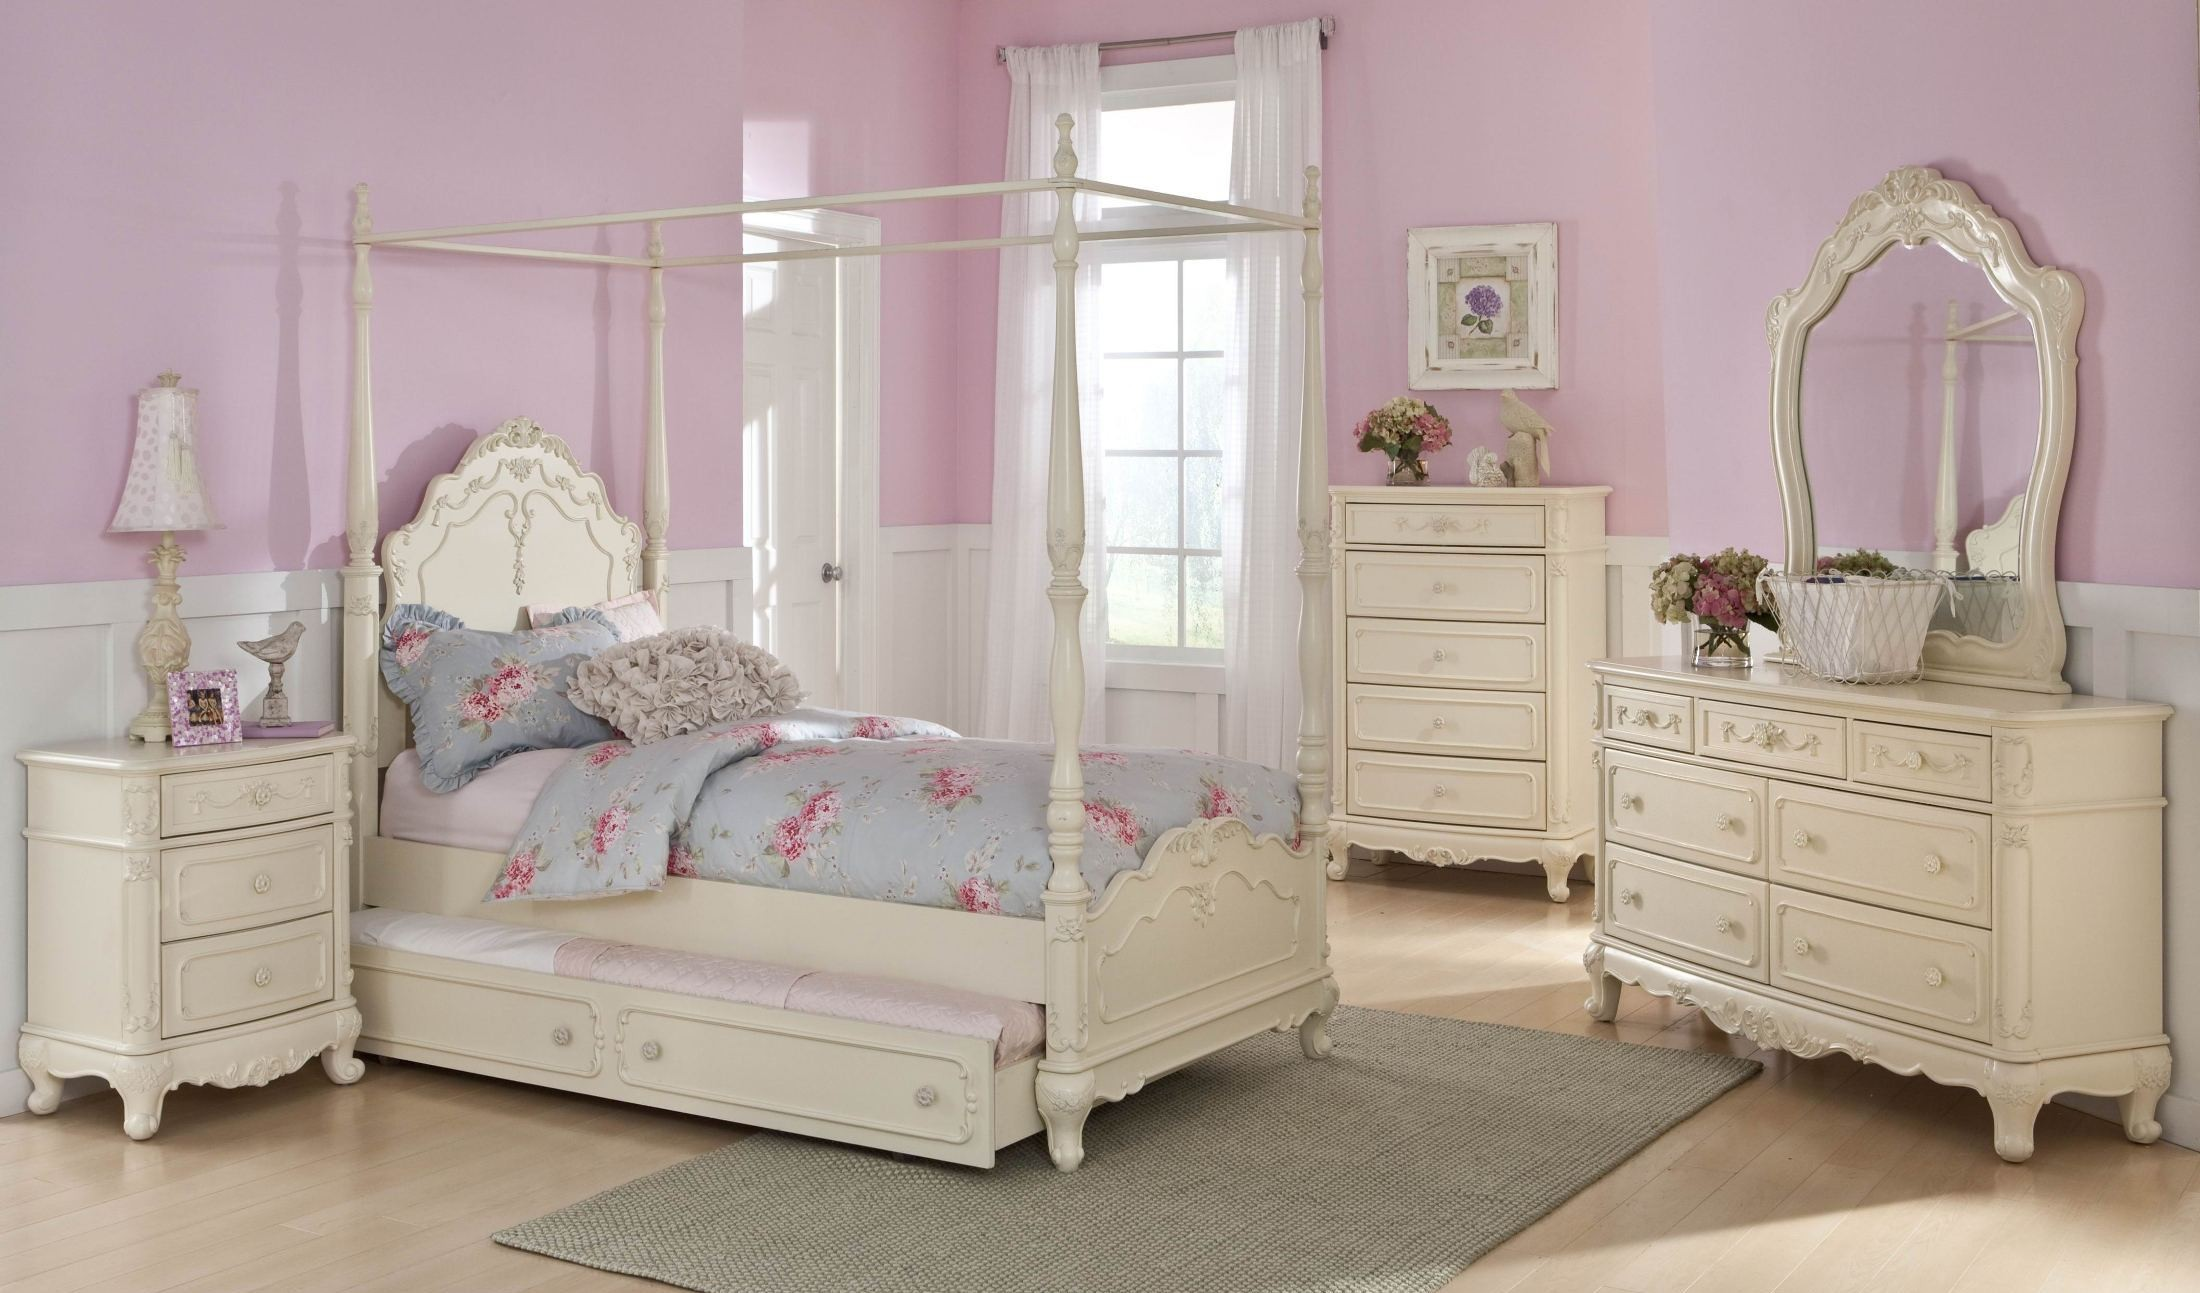 Cinderella youth canopy poster bedroom set from for Canopy bedroom furniture